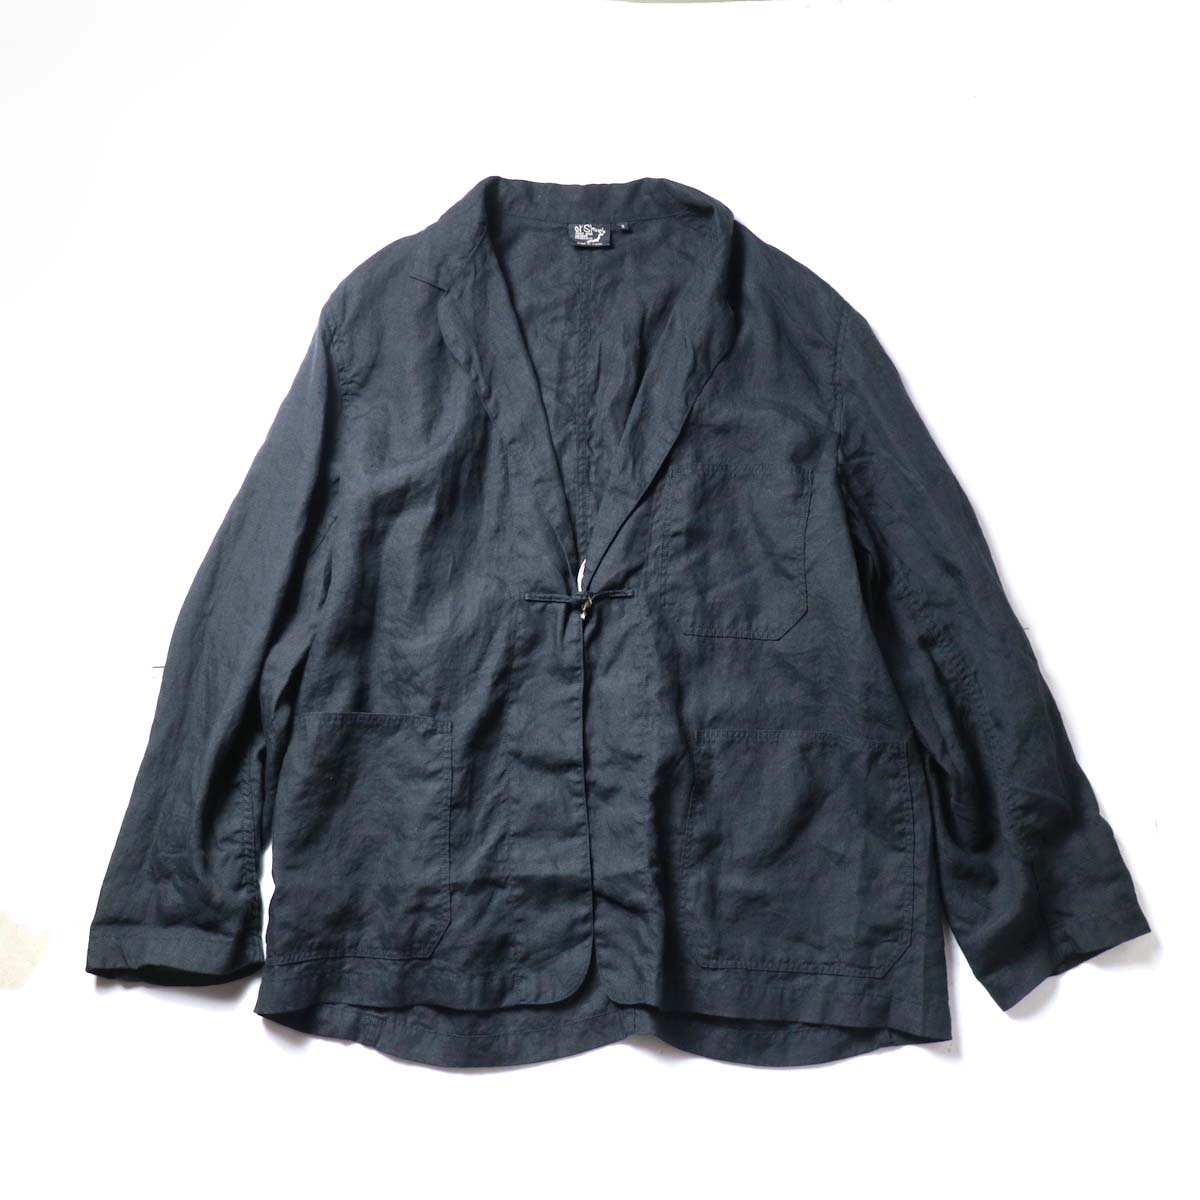 orSlow / Frog Button Linen Jacket